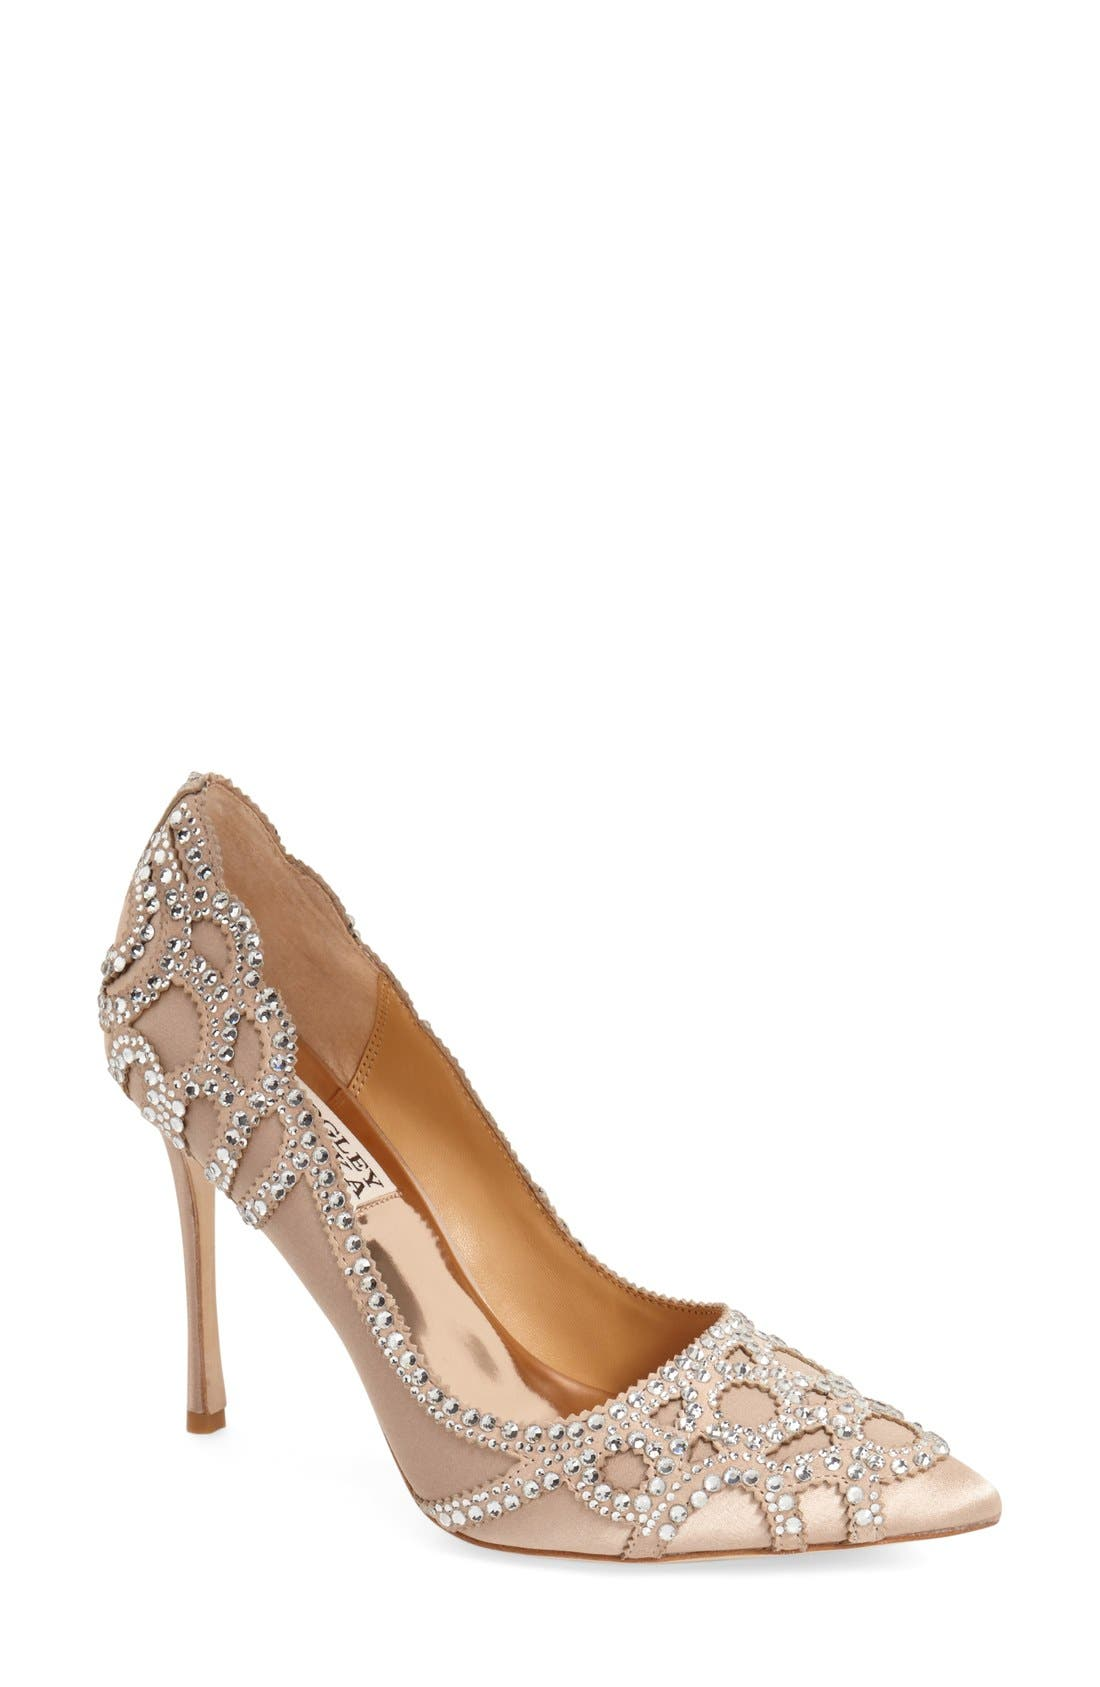 Badgley Mischka 'Rouge' Pointy Toe Pump,                             Main thumbnail 1, color,                             LATTE SATIN